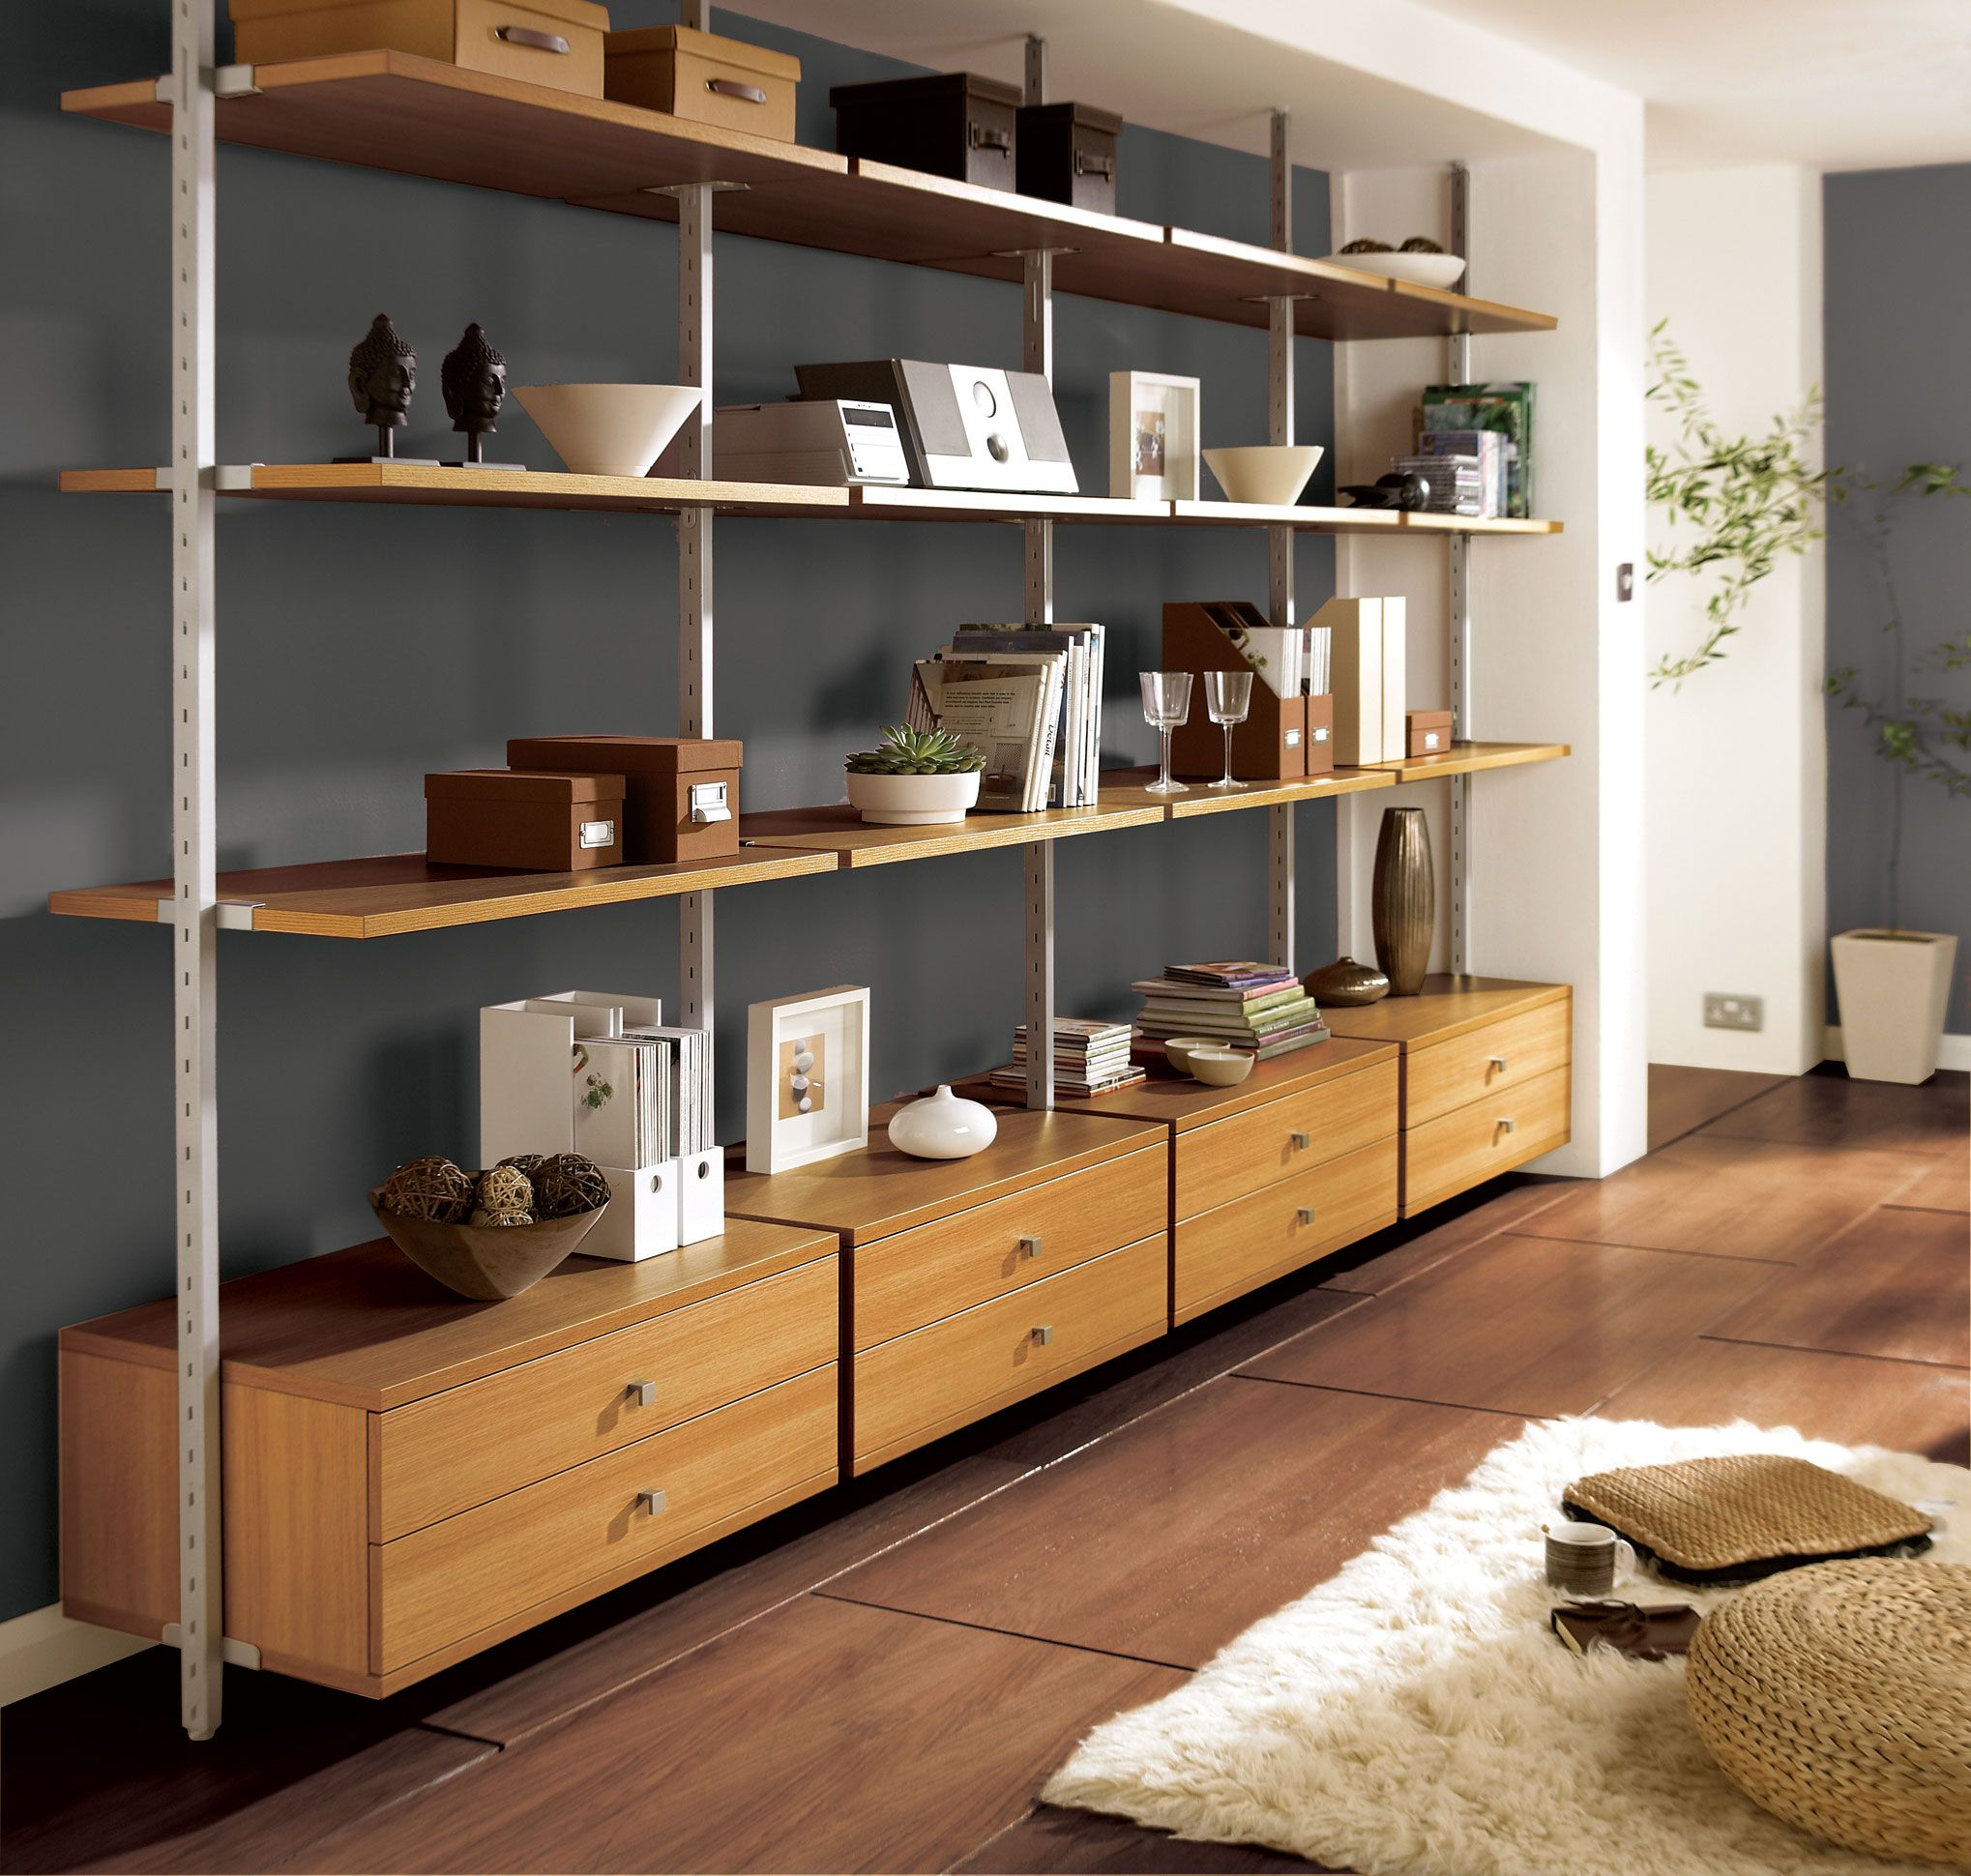 Charmant Sophisticated Modular Shelving Units For Modern Interior: Stunning Wooden  Flooring Modular Shelving Units Applied In Living Room Space Of Lu.